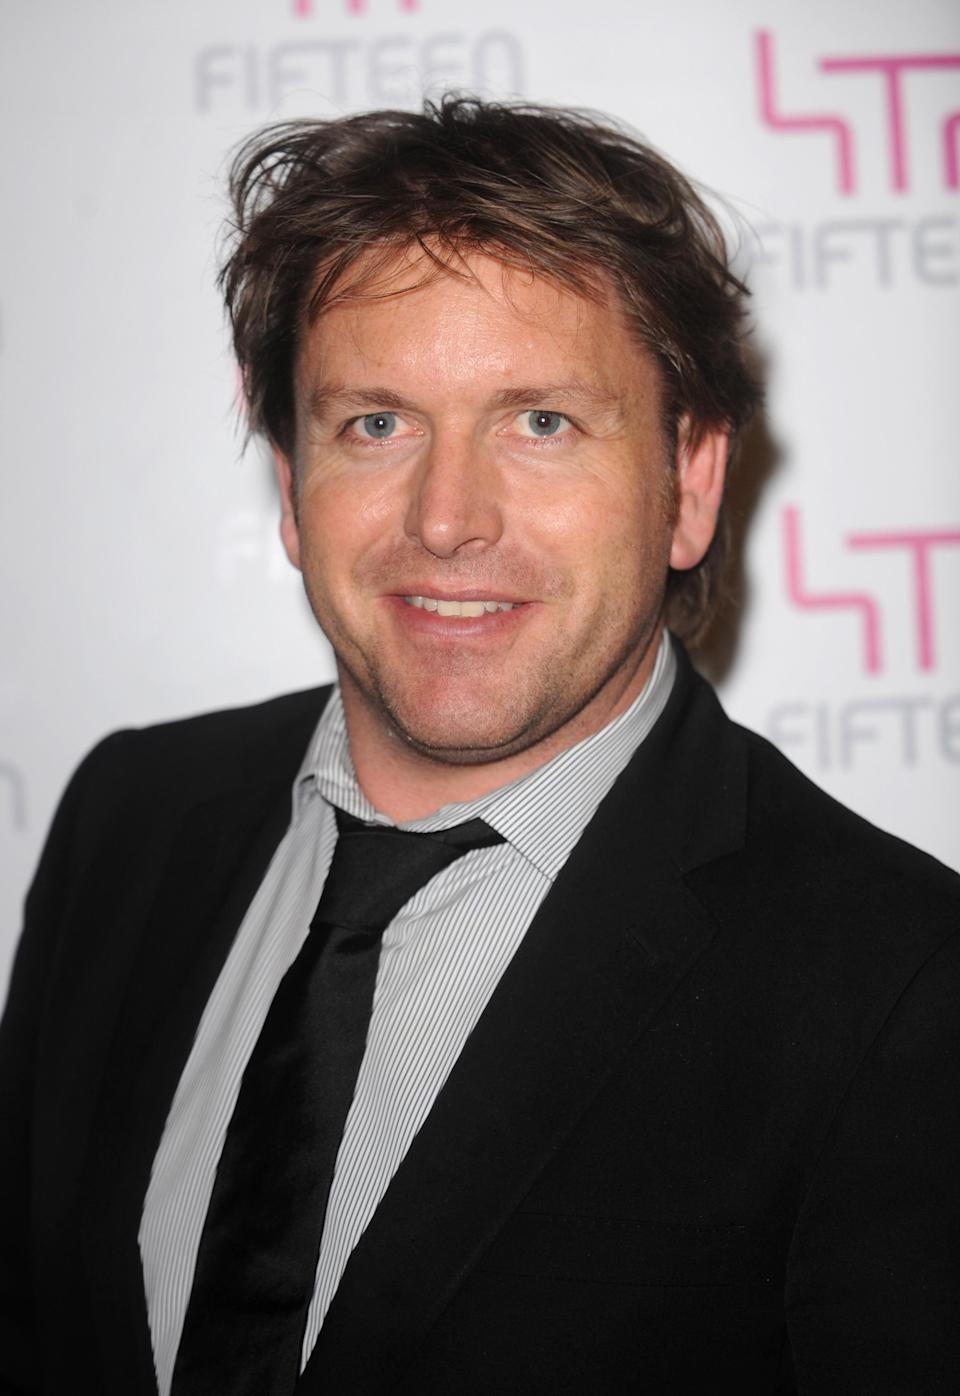 James Martin arrives for celebrity chef Jamie Oliver's Big Night Out, a fundraising event for the Fifteen Foundation, at Shoreditch Town Hall in east London.